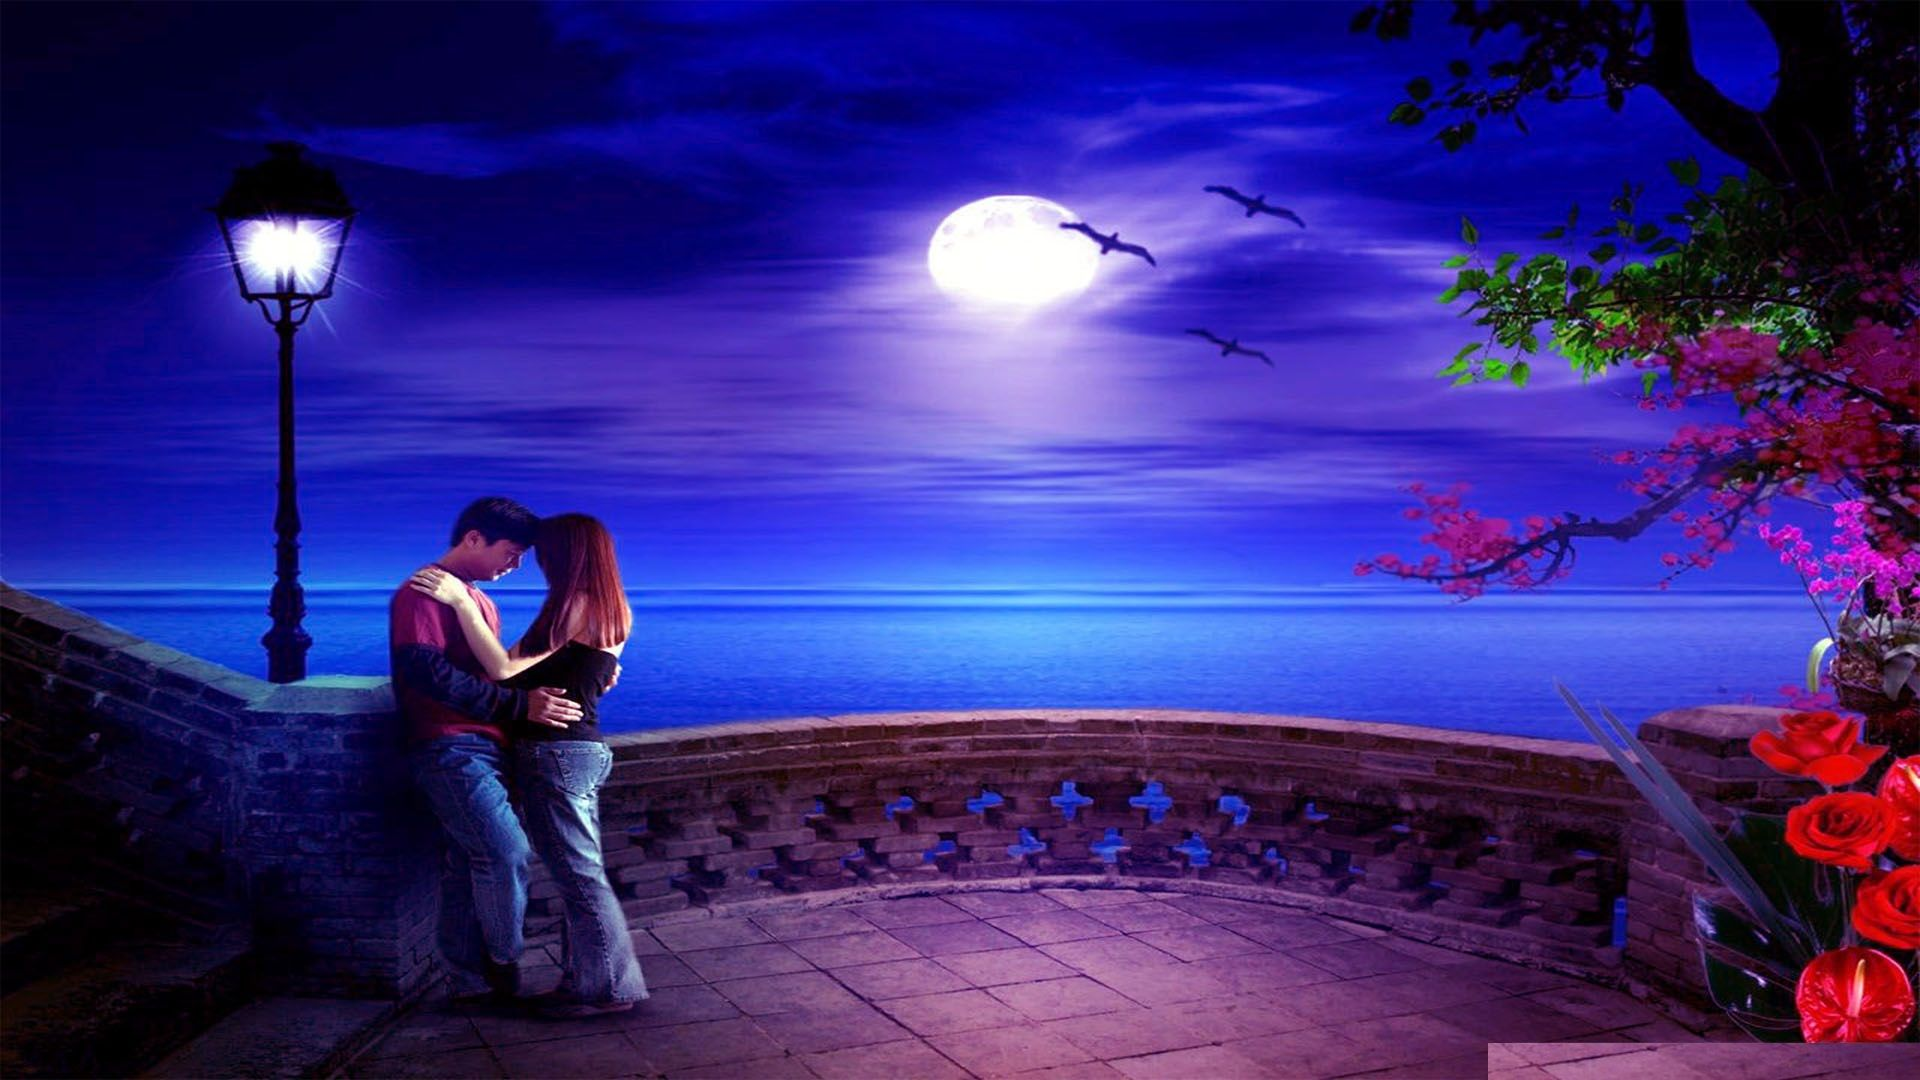 Romantic Love Wallpapers For Mobile Phones : Romantic Love HD Wallpapers : Find best latest Romantic ...